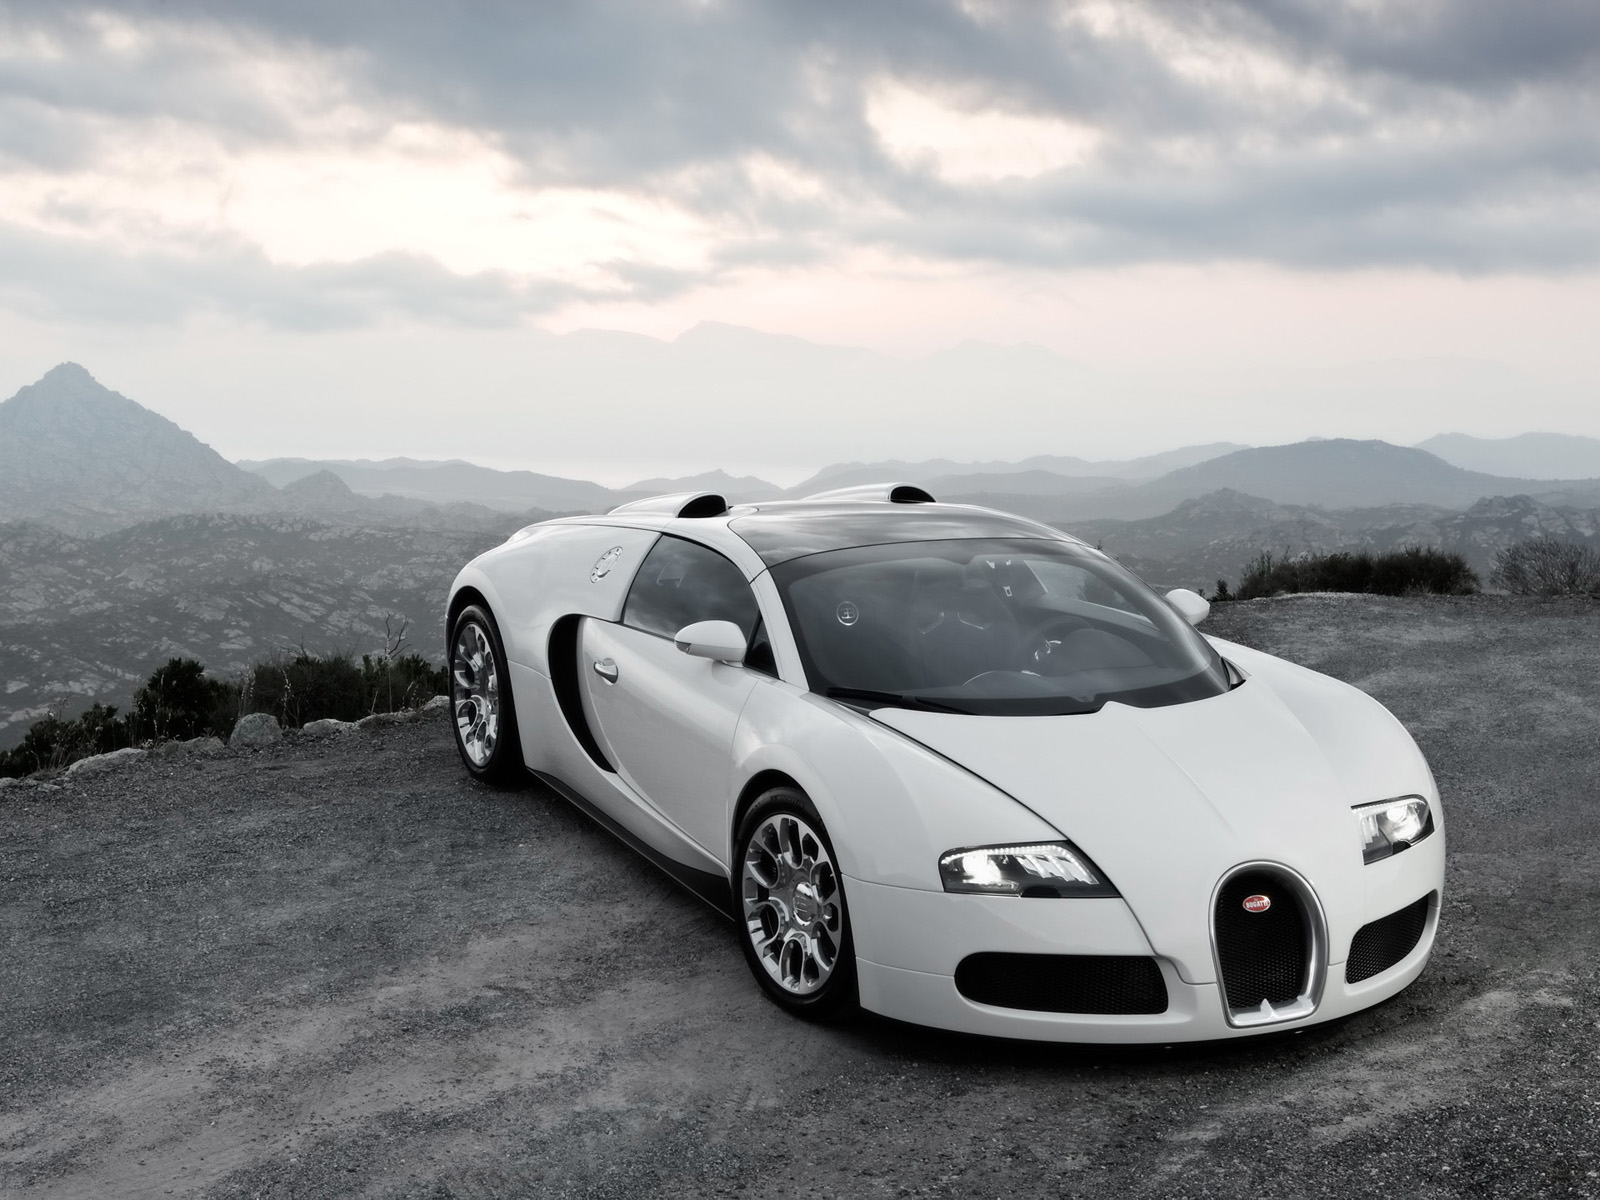 Funny Wallpapershd Wallpapers Sports Cars Wallpapers 2009